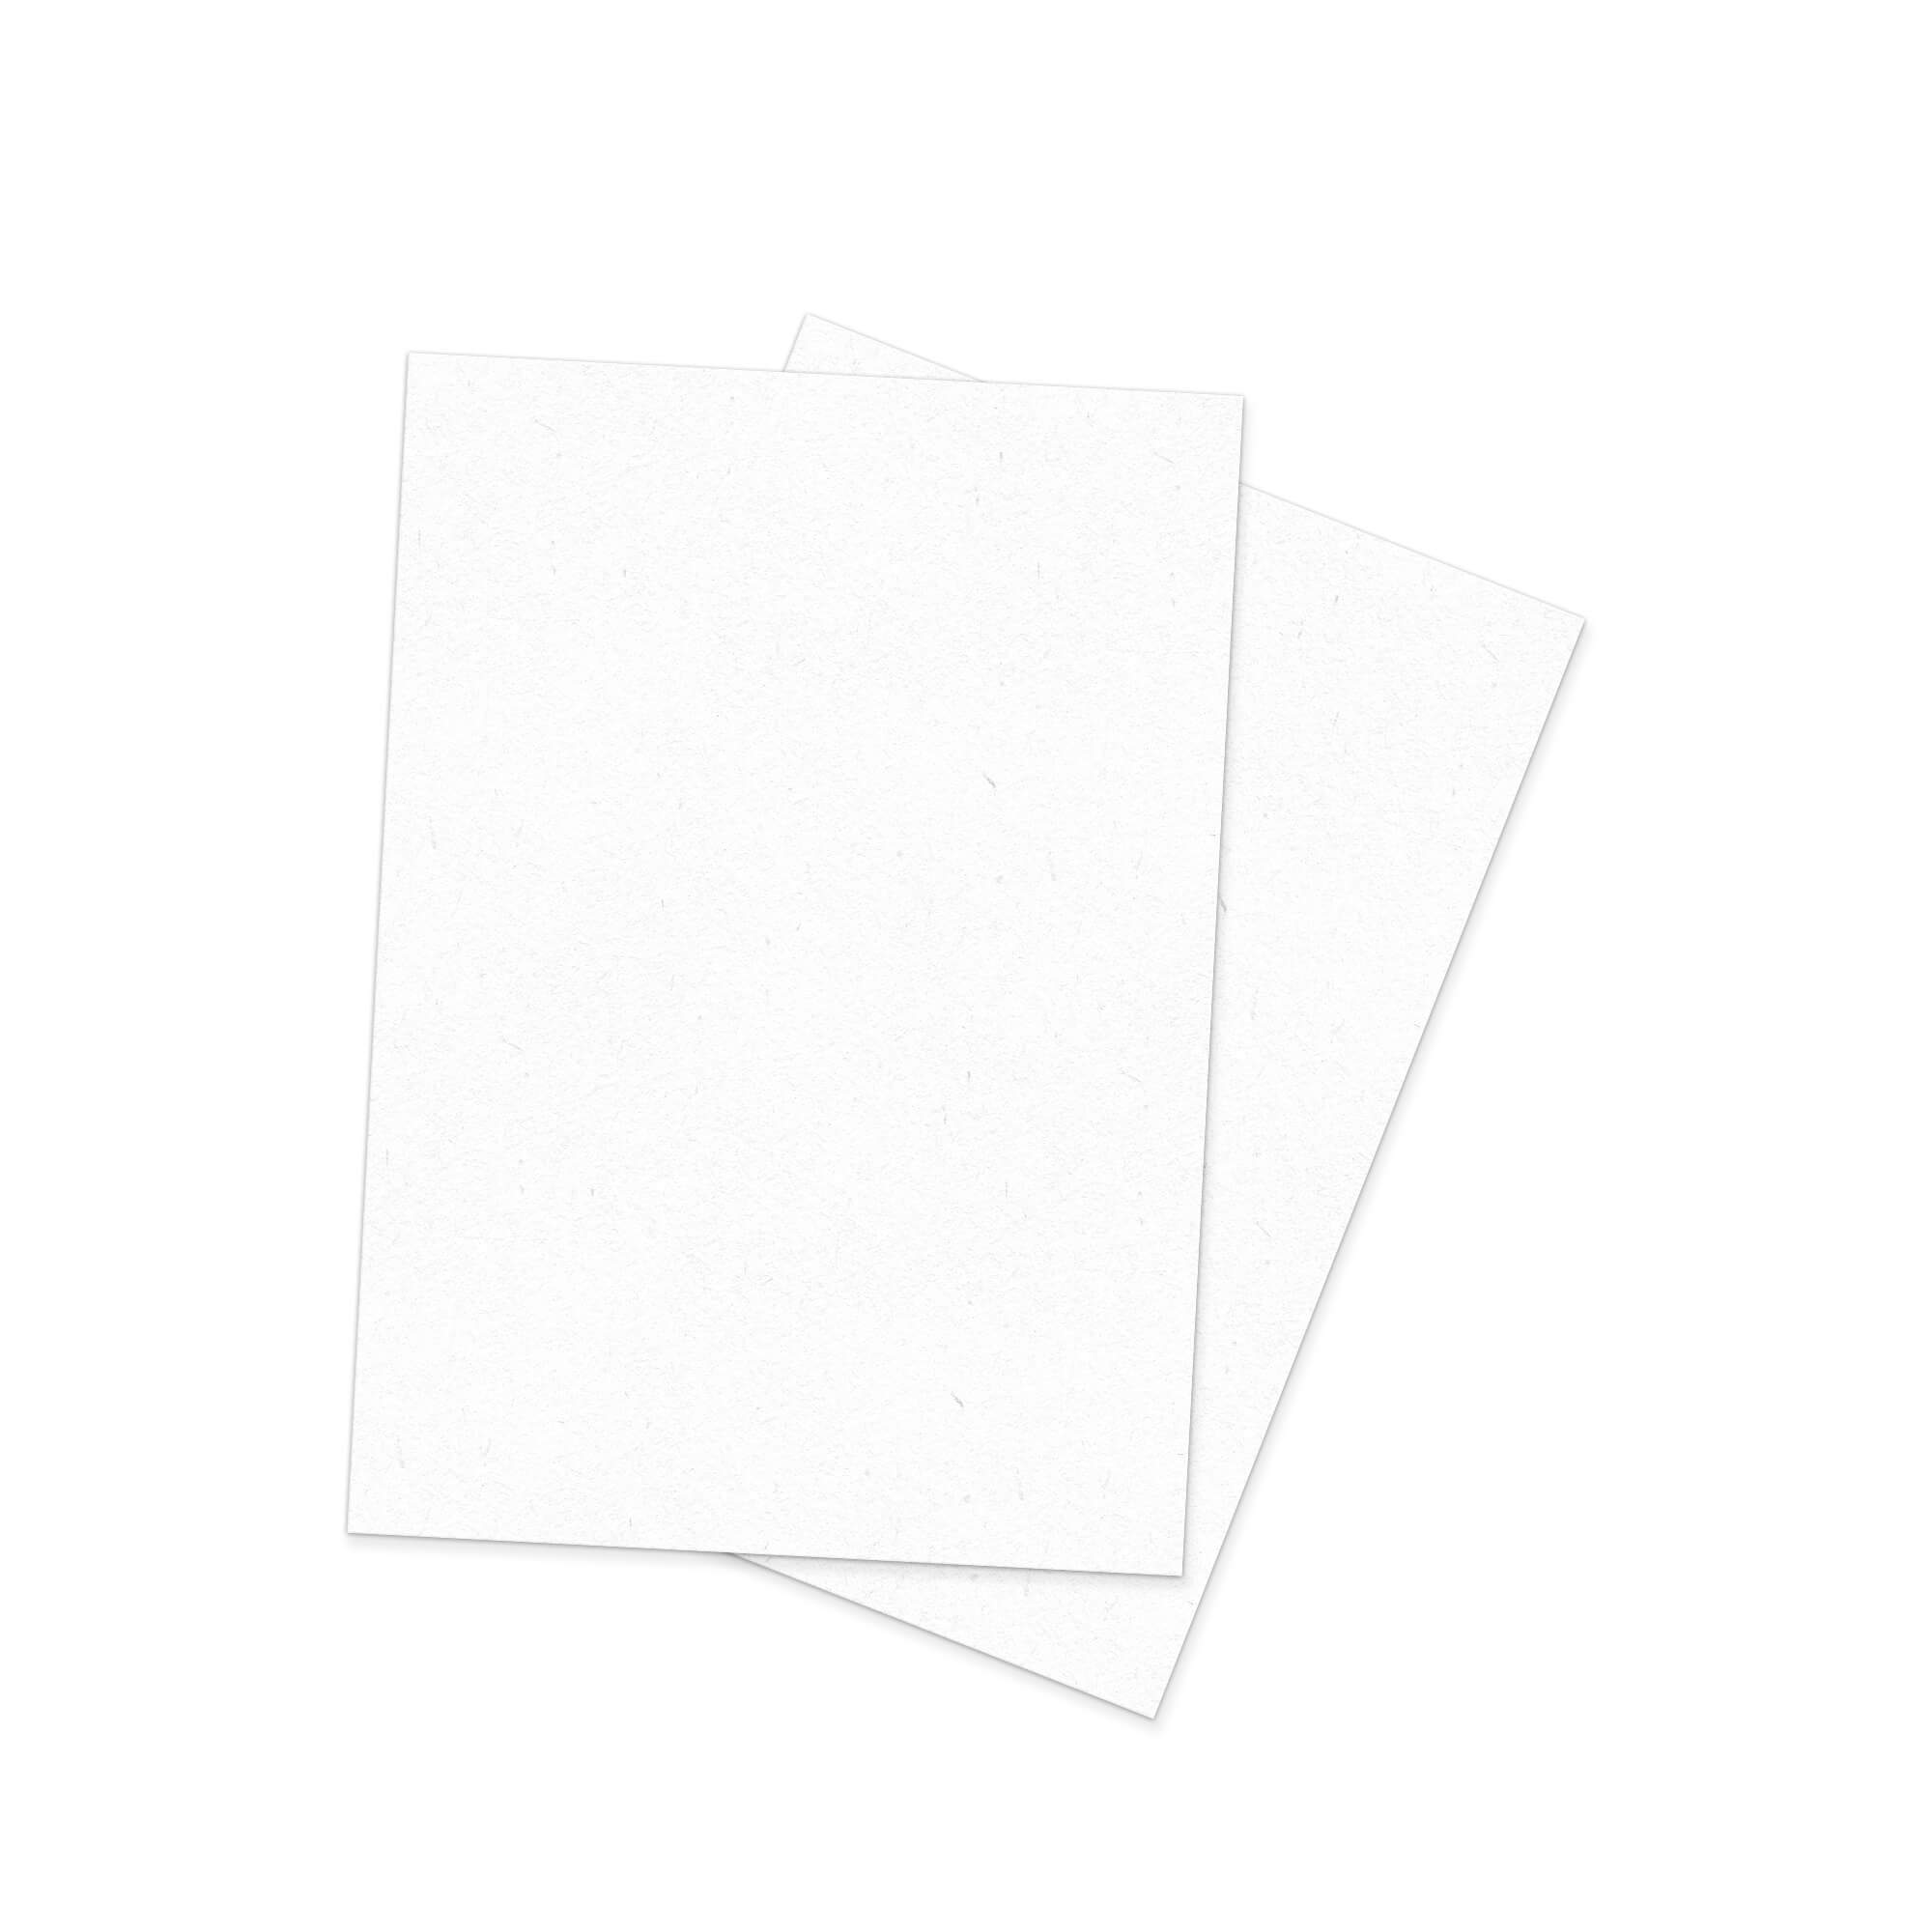 Blank Free A4 Paper Mockup PSD Template